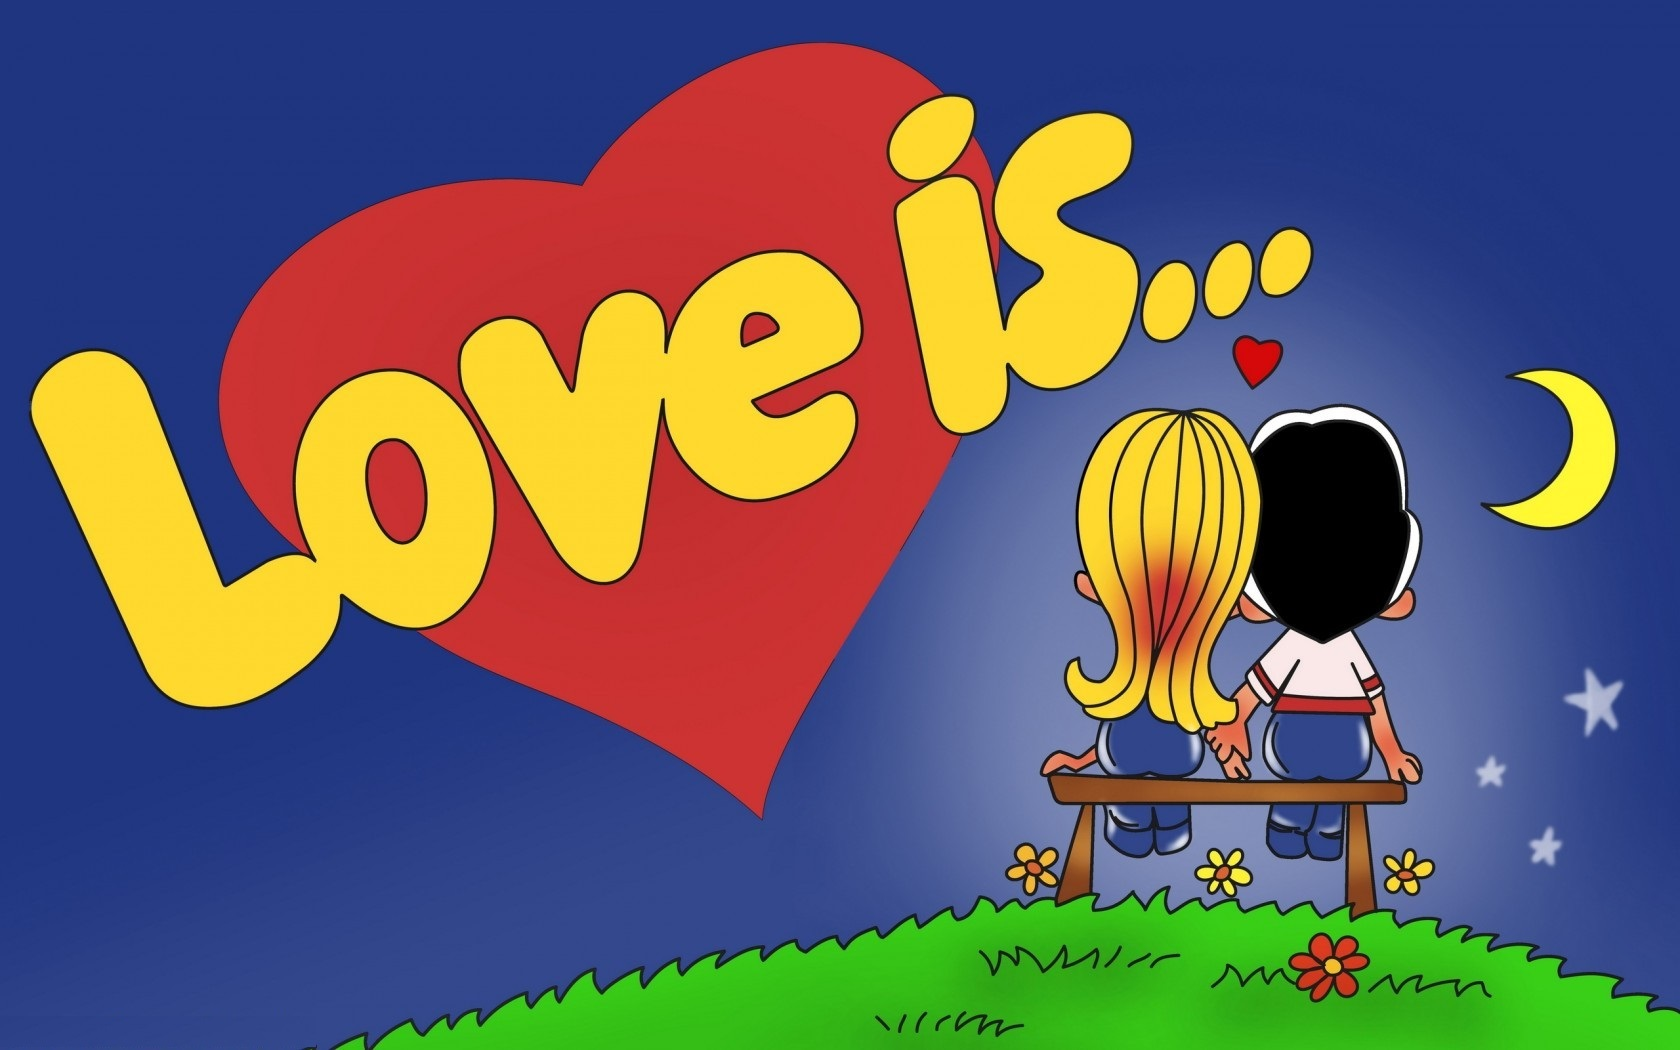 Top Cartoon Love HD Wallpaper Free Download - romantic-love-hd-images-free-download-20-high-resolution-wallpaper  Pictures_101777.jpg